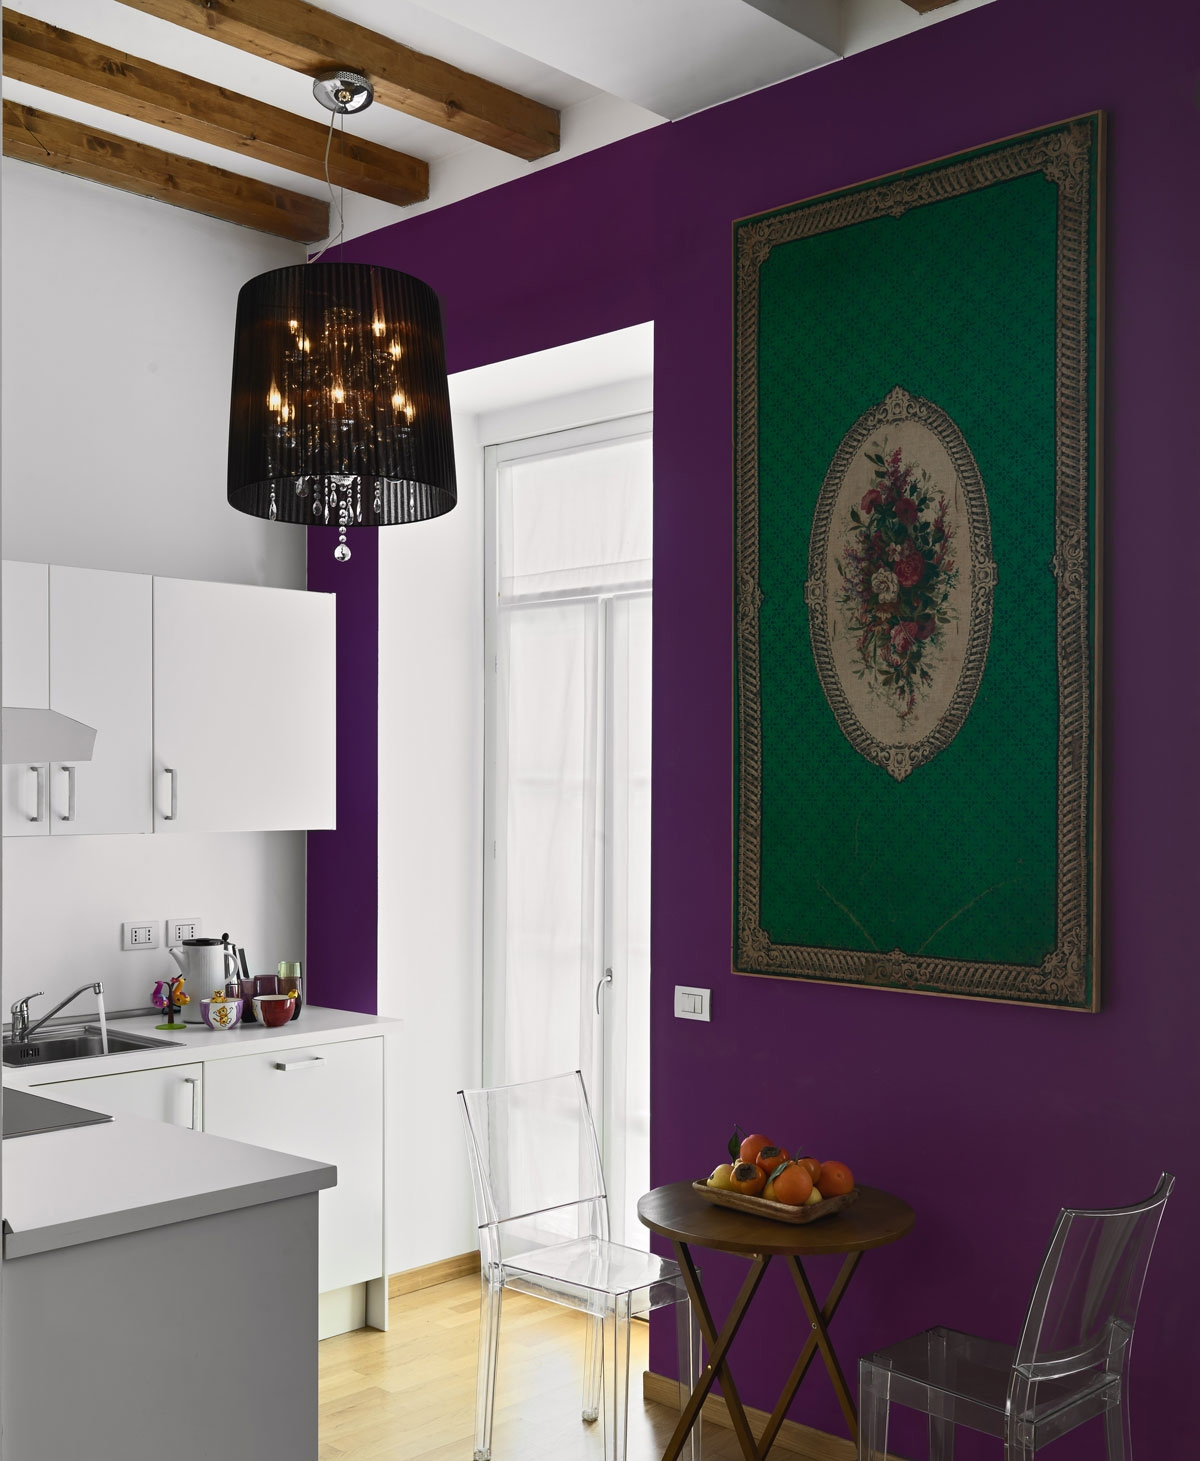 5-dining-room-design Purple-dining-room-painted Round-wooden-dining-table Glass-dining-chair